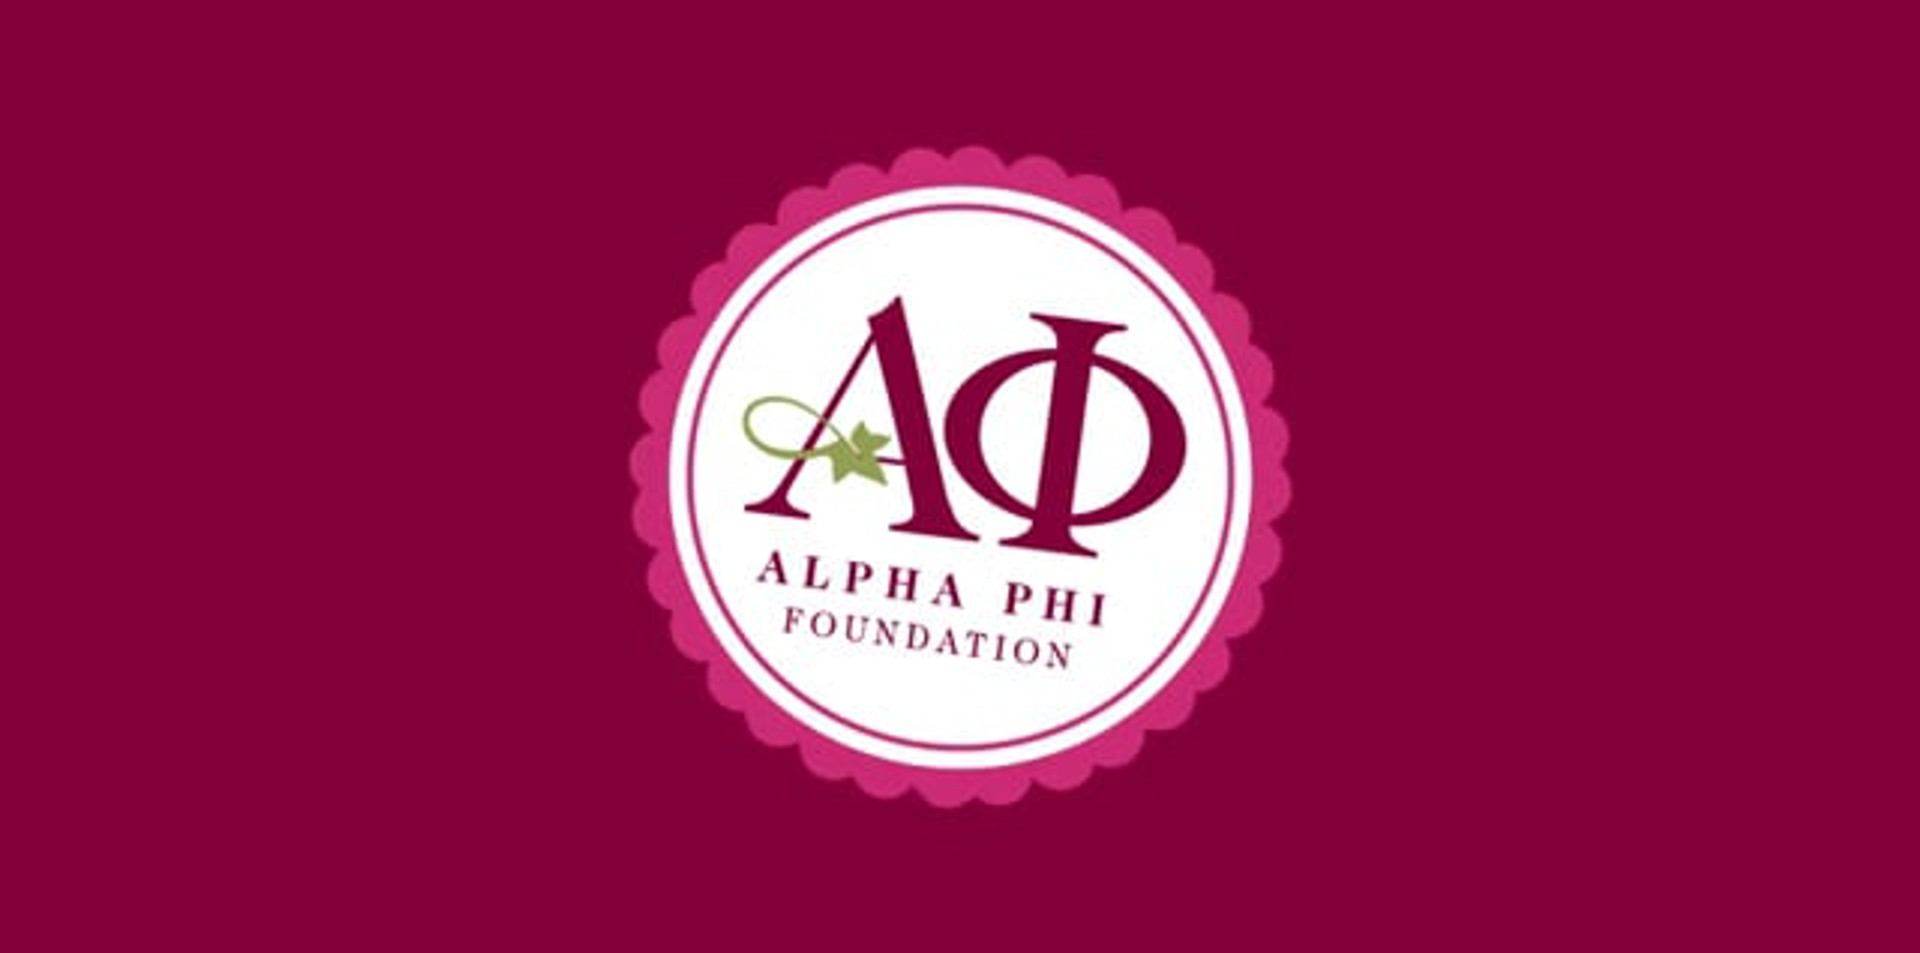 Alpha Phi Foundation: AED Campaign